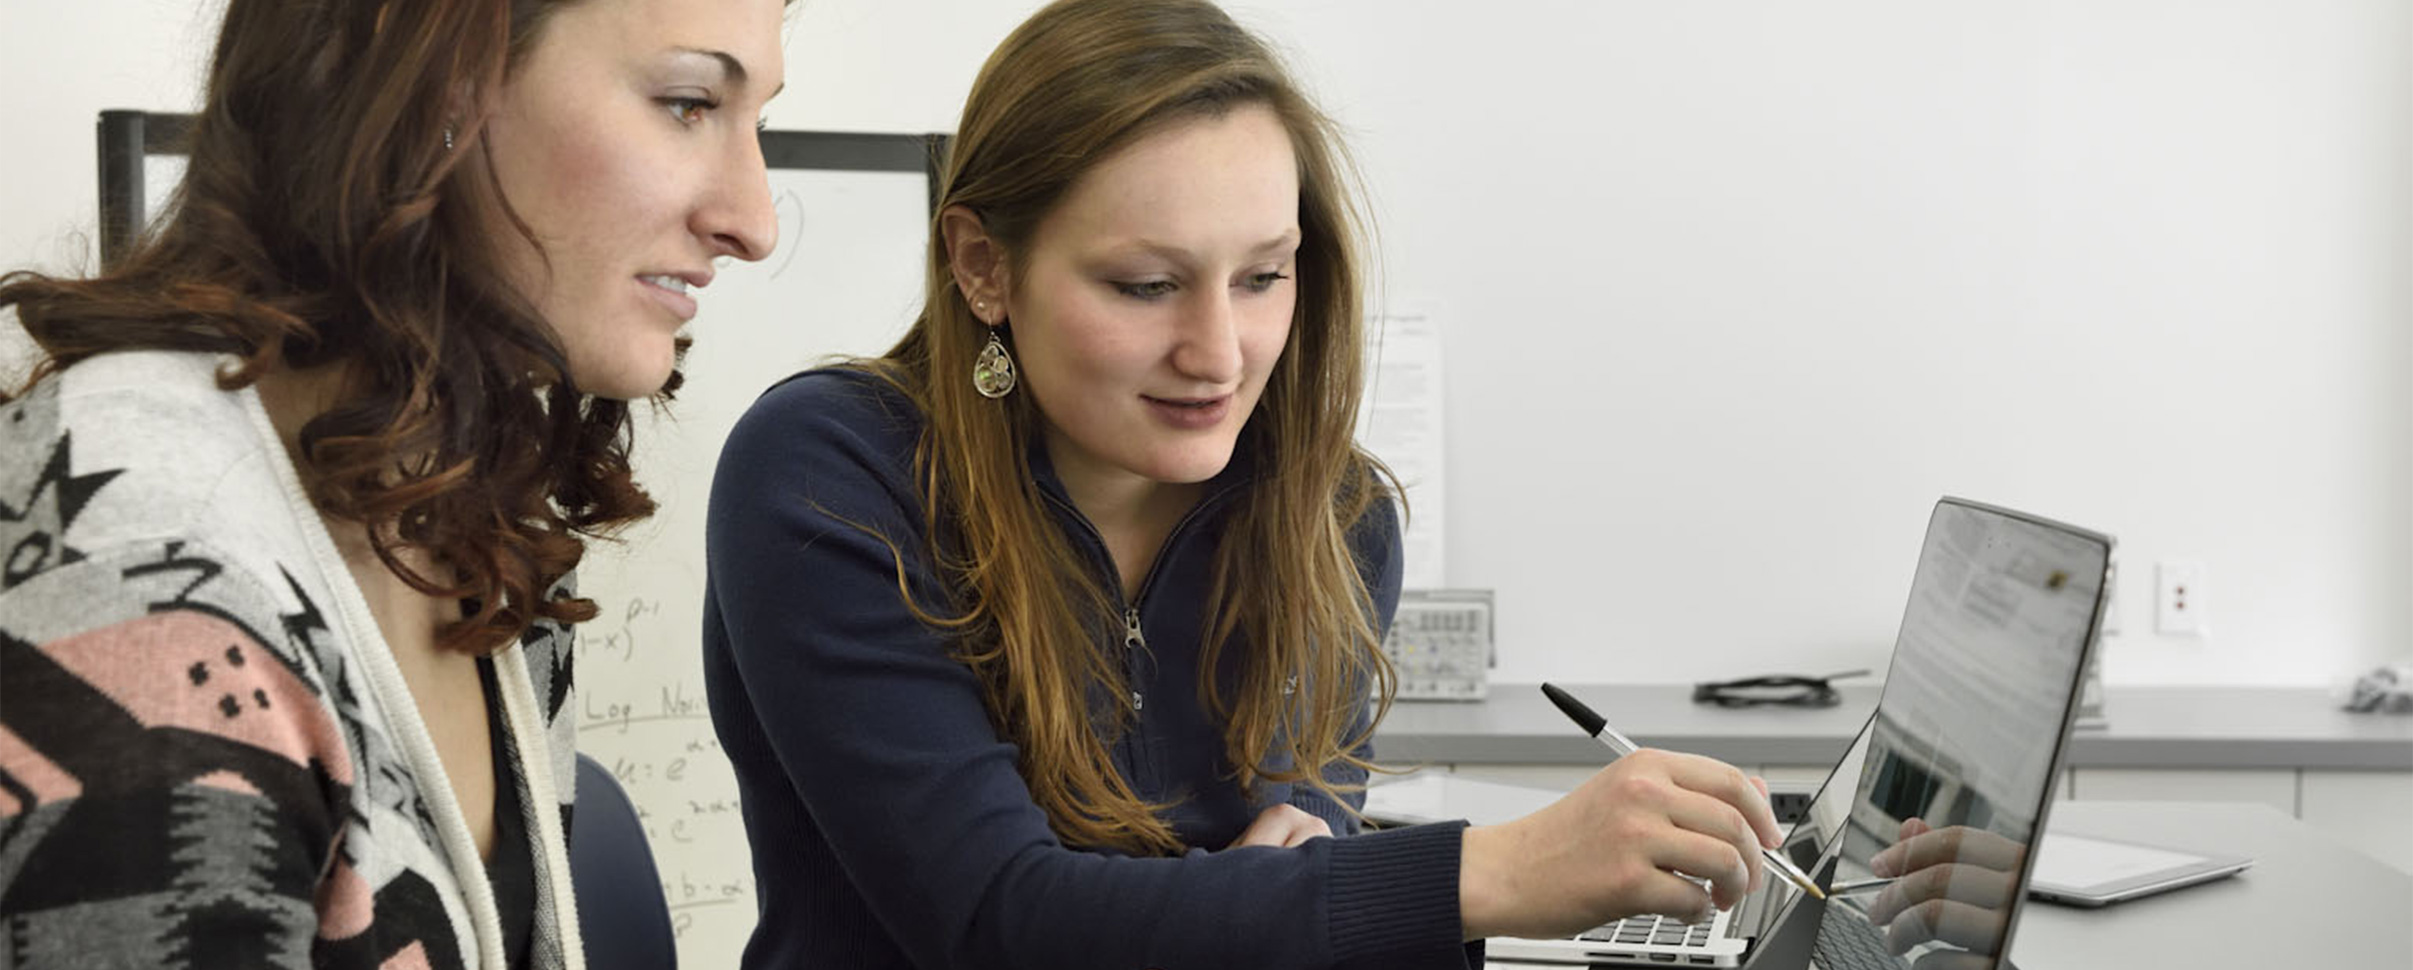 Two students working together on laptops